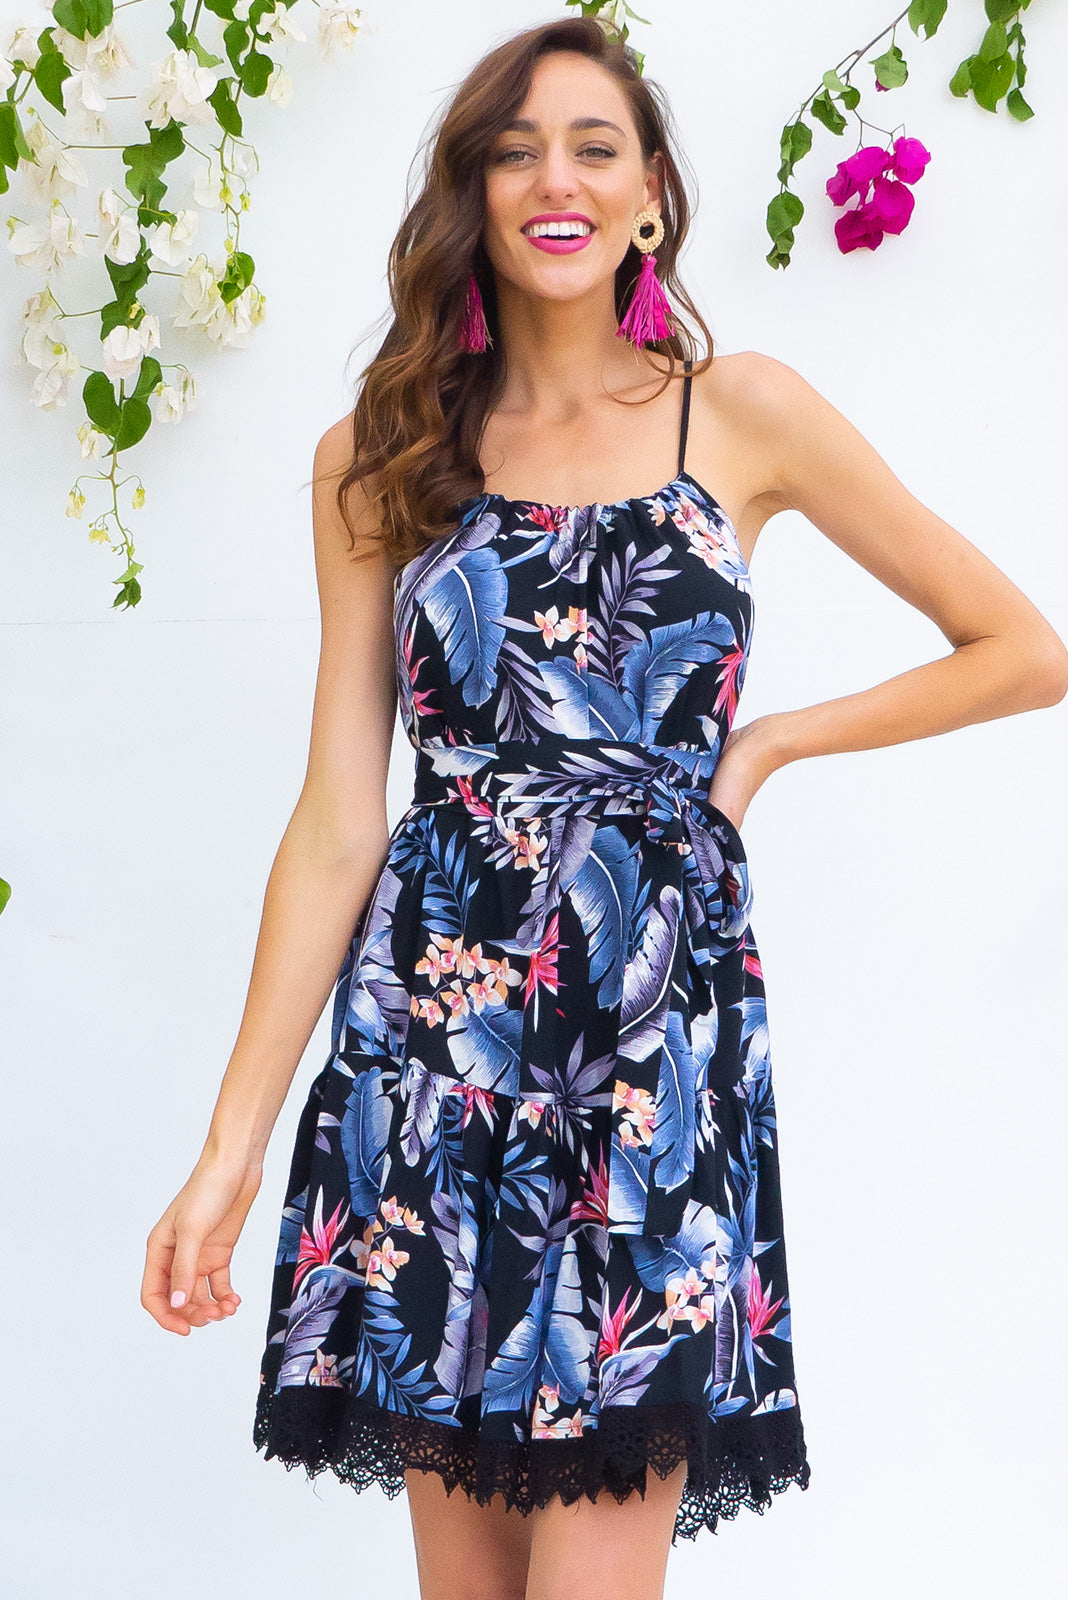 Santorini Inky Jungle tiered dress with an adjustable rope neckline, deep side pockets and cotton lace detailing in a deep inky navy blue based tropical print on 100% rayon